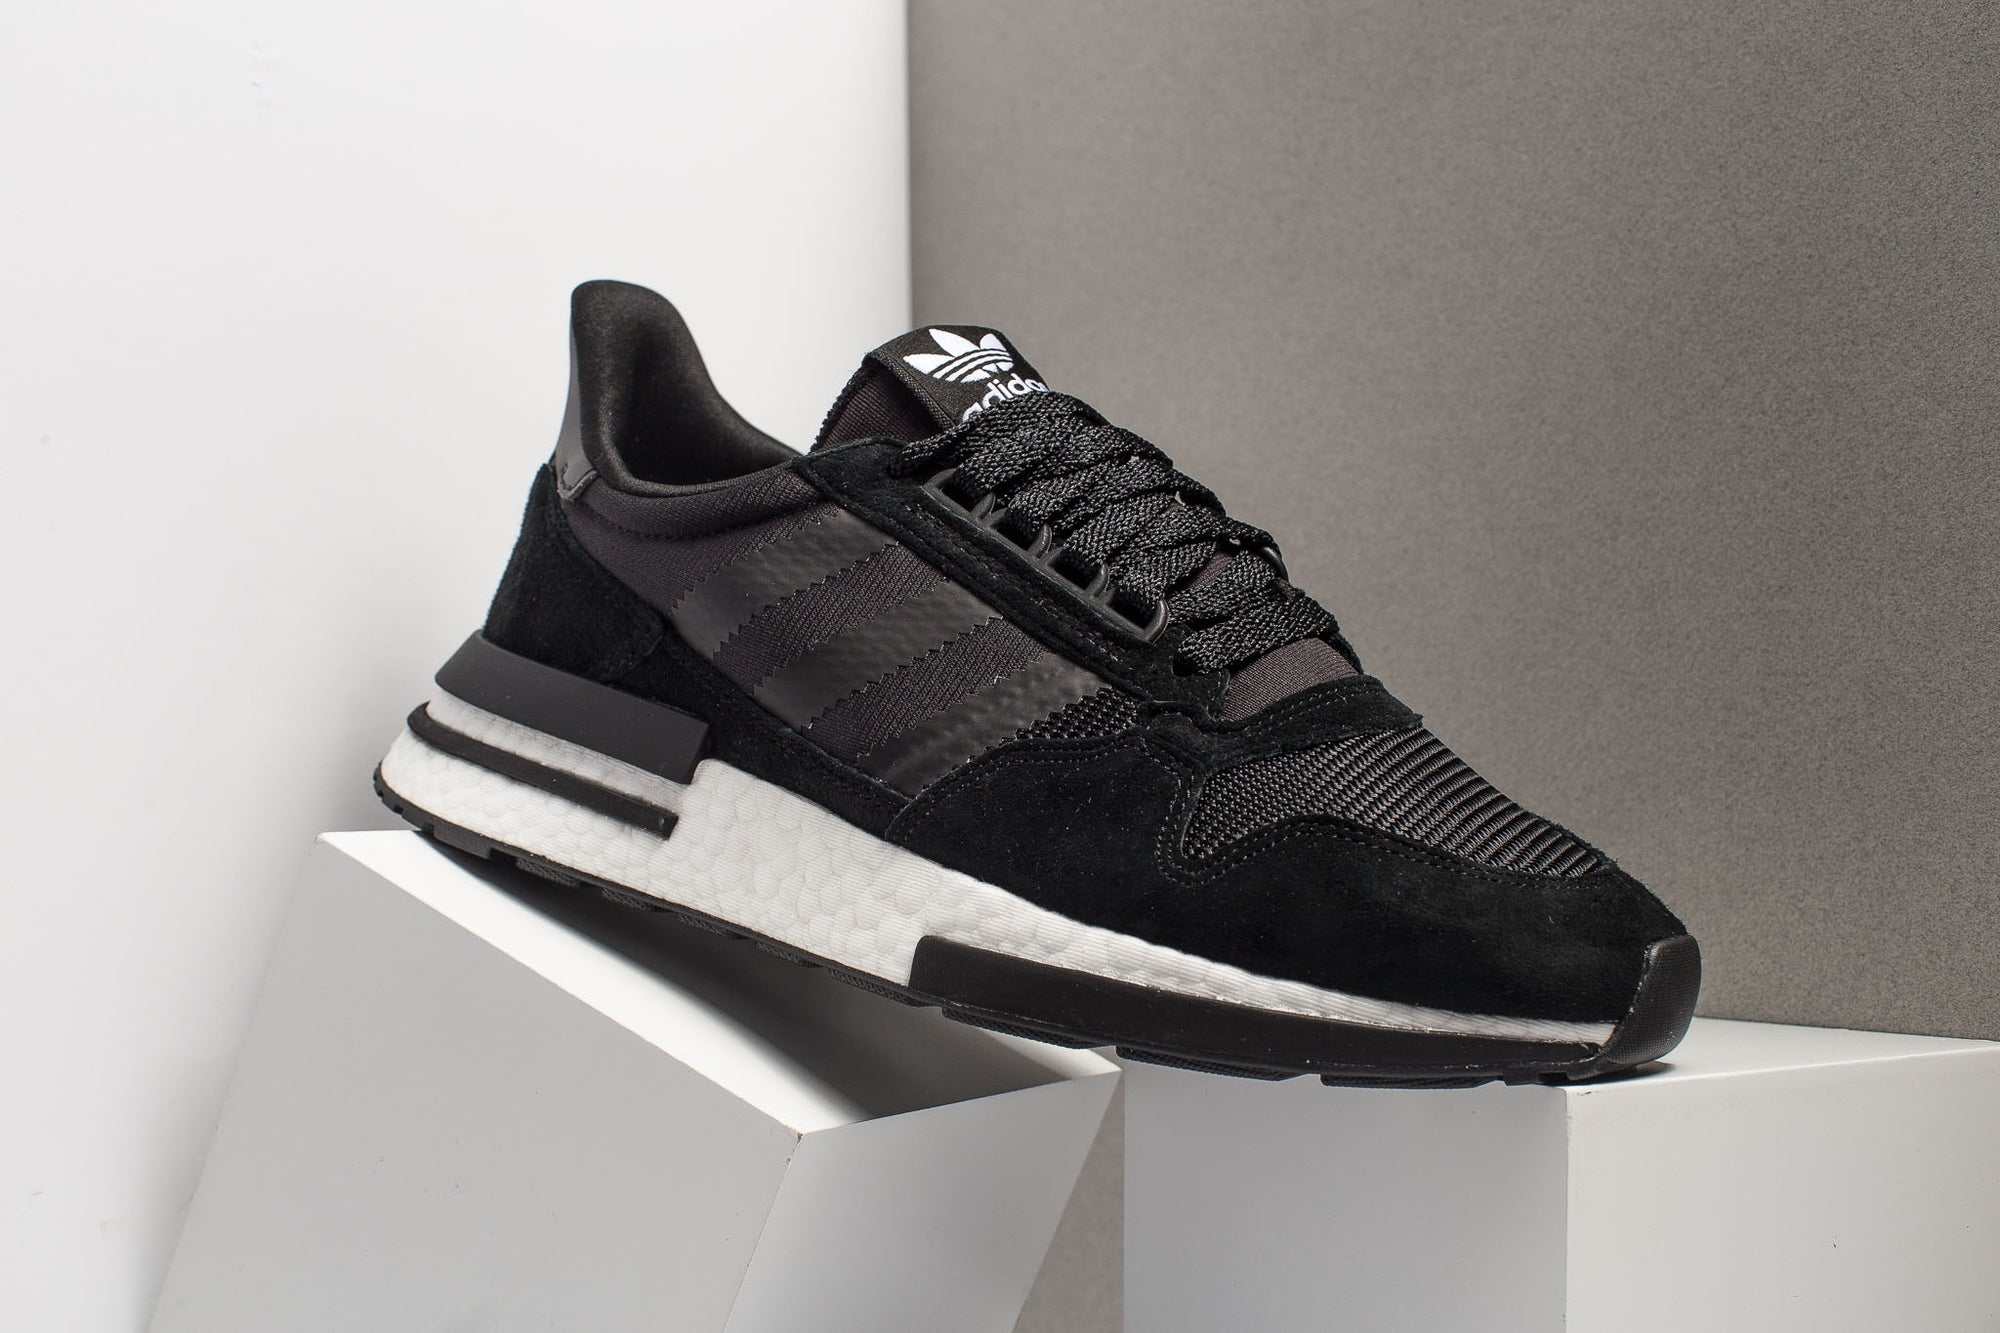 ADIDAS ZX 500 RM - Oneness Boutique